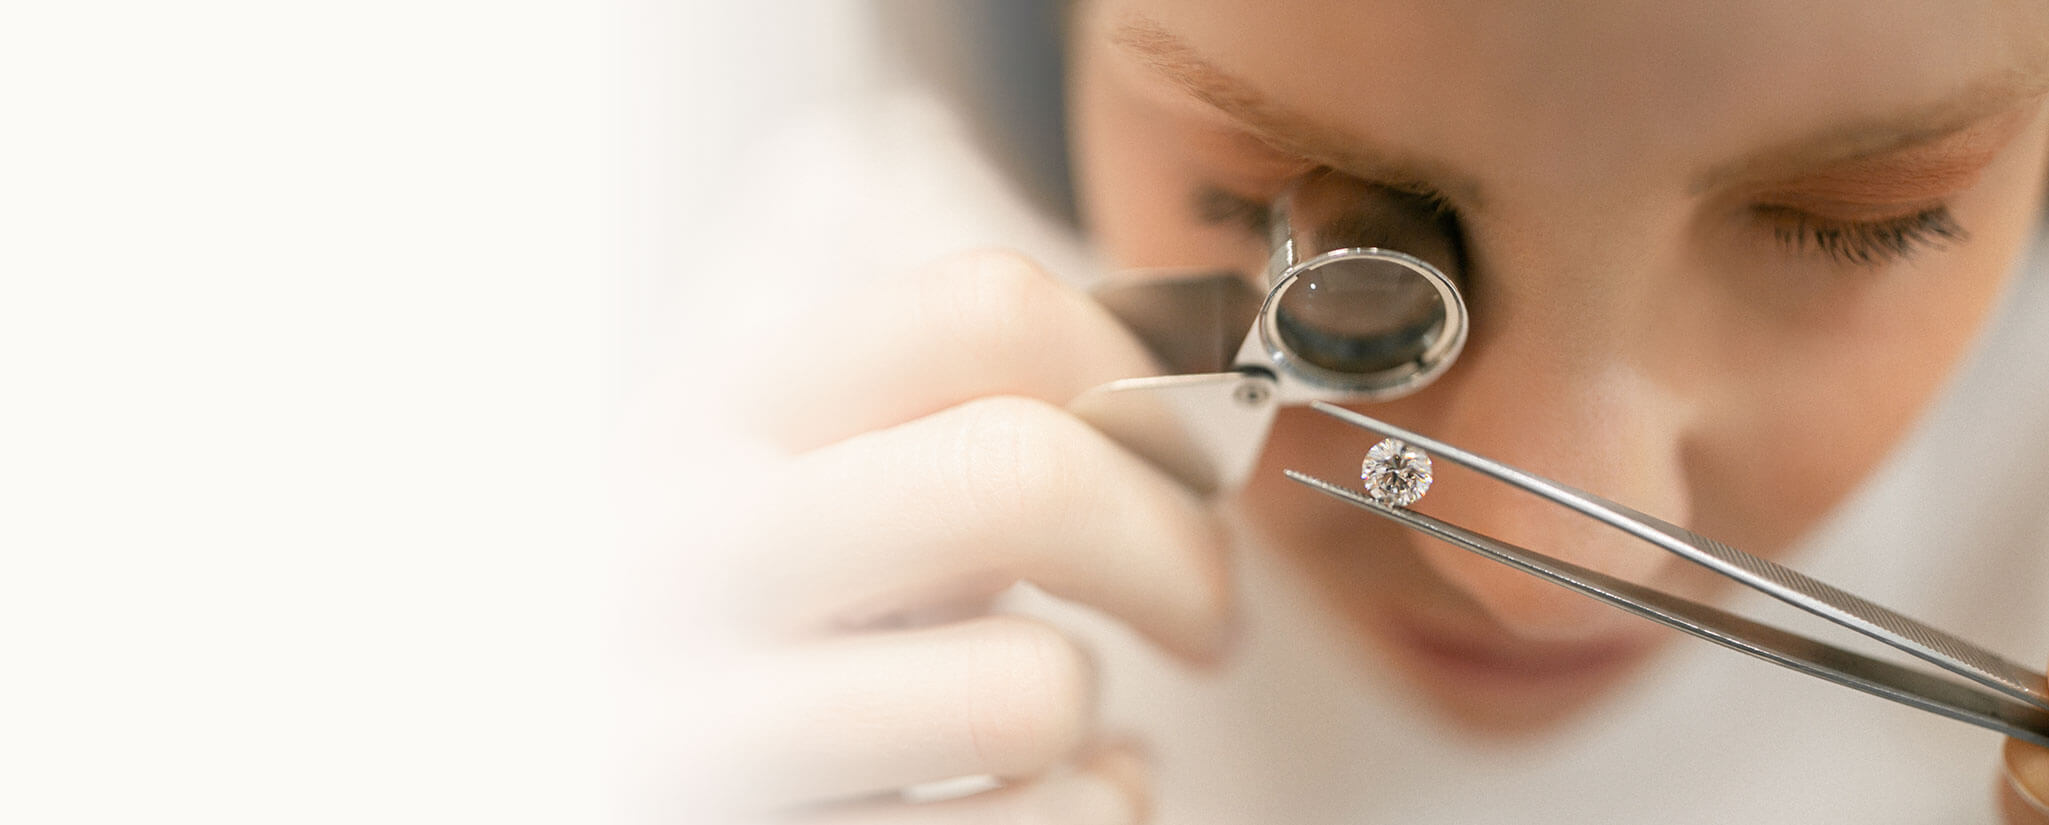 An Ecksand Jeweller Inspecting a Loose Round Cut Recycled Diamond Held in a Pair of Diamond Tweezers Through a Jewellers Loupe